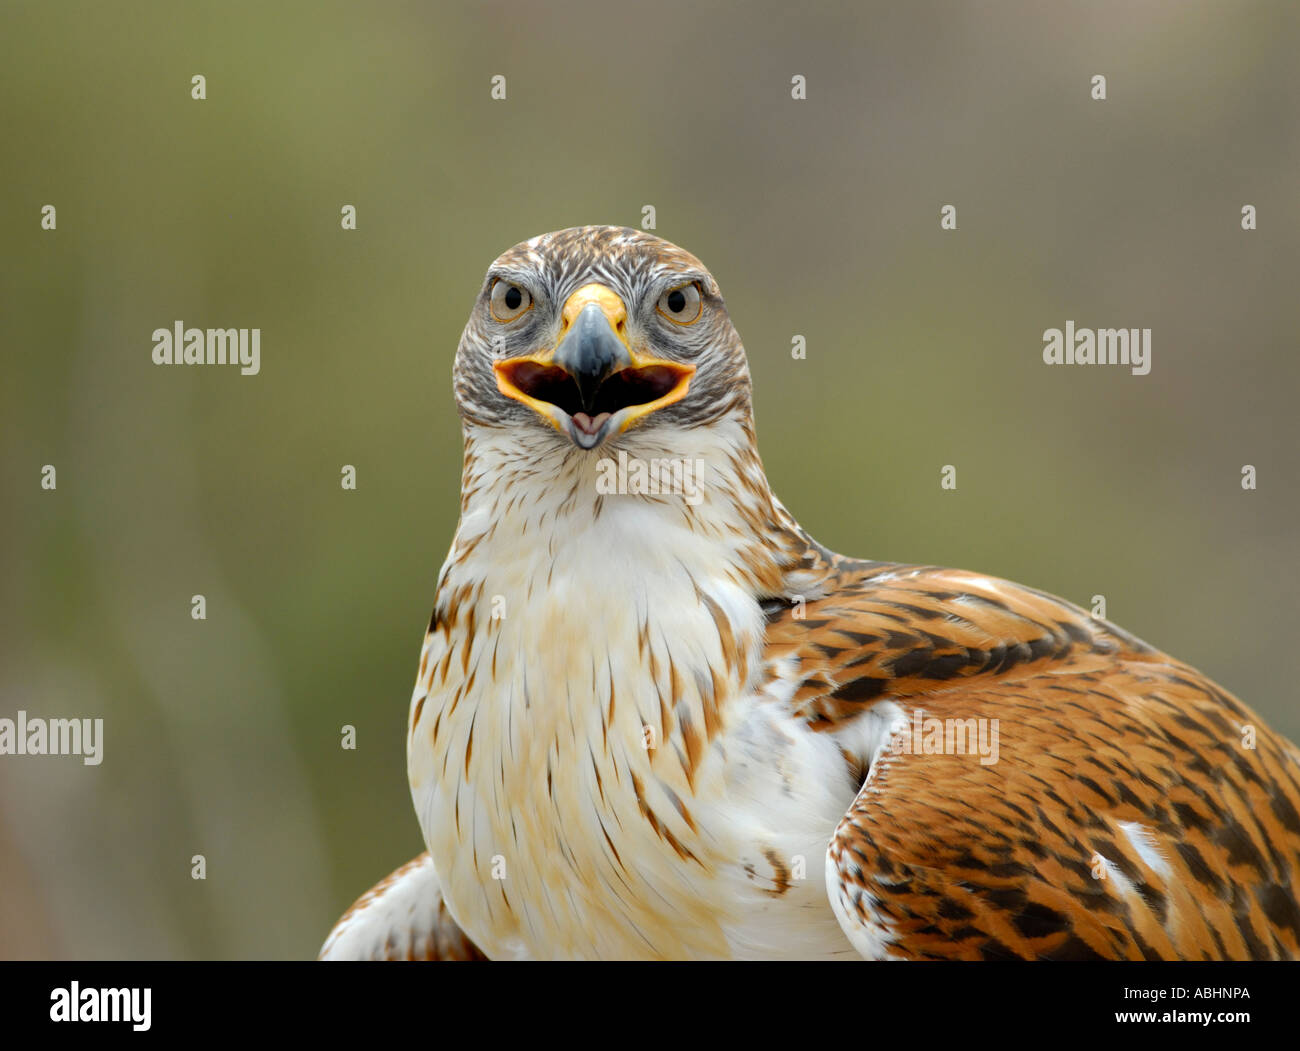 Buse rouilleuse, Buteo regalis, close-up de tête et corps looking at camera Photo Stock